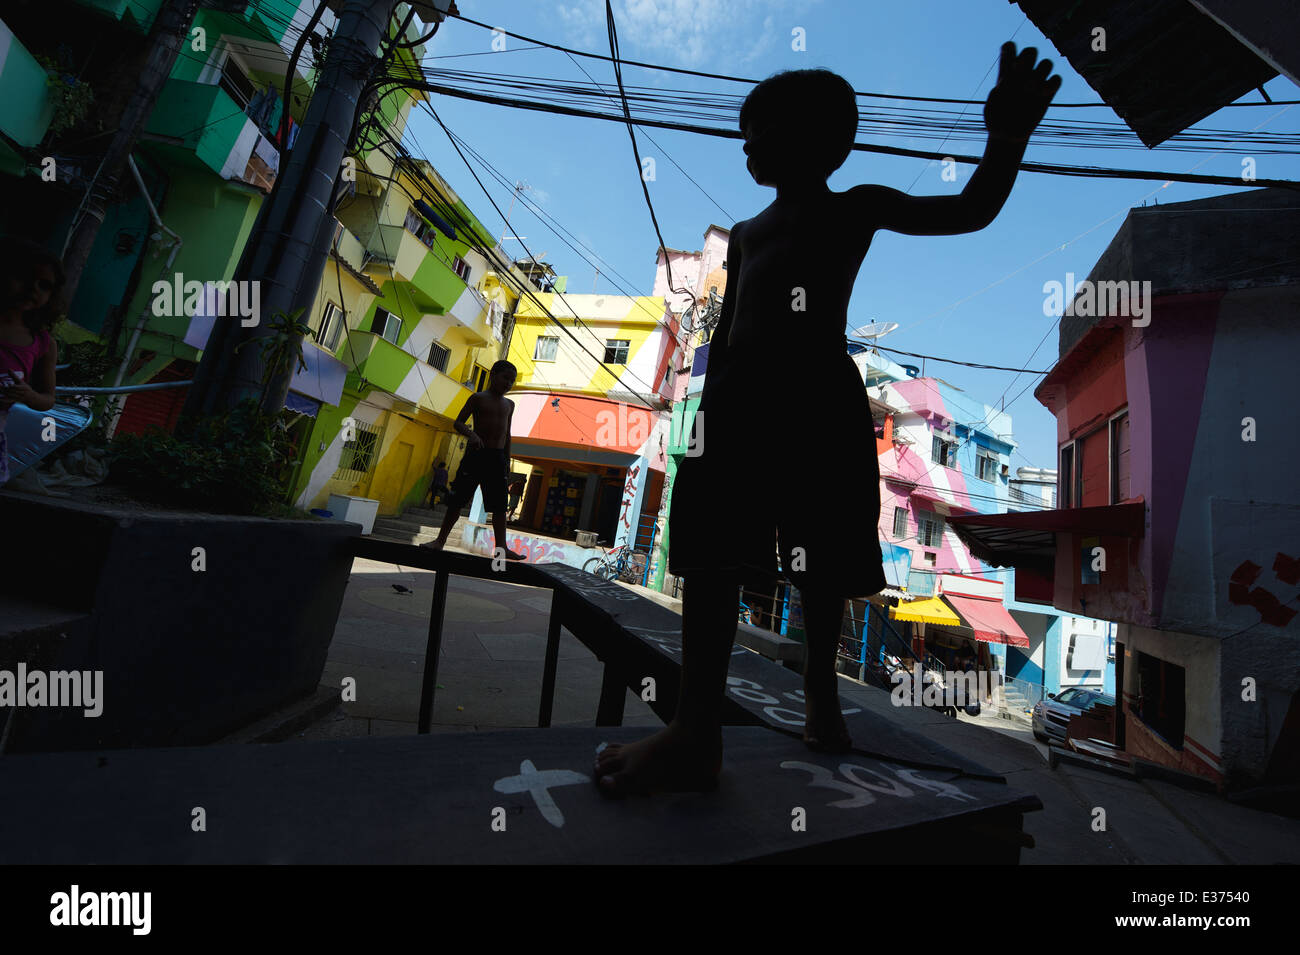 RIO DE JANEIRO, BRAZIL - FEBRUARY 14, 2014: Silhouettes of children play at colorful painted buildings Favela Dona - Stock Image